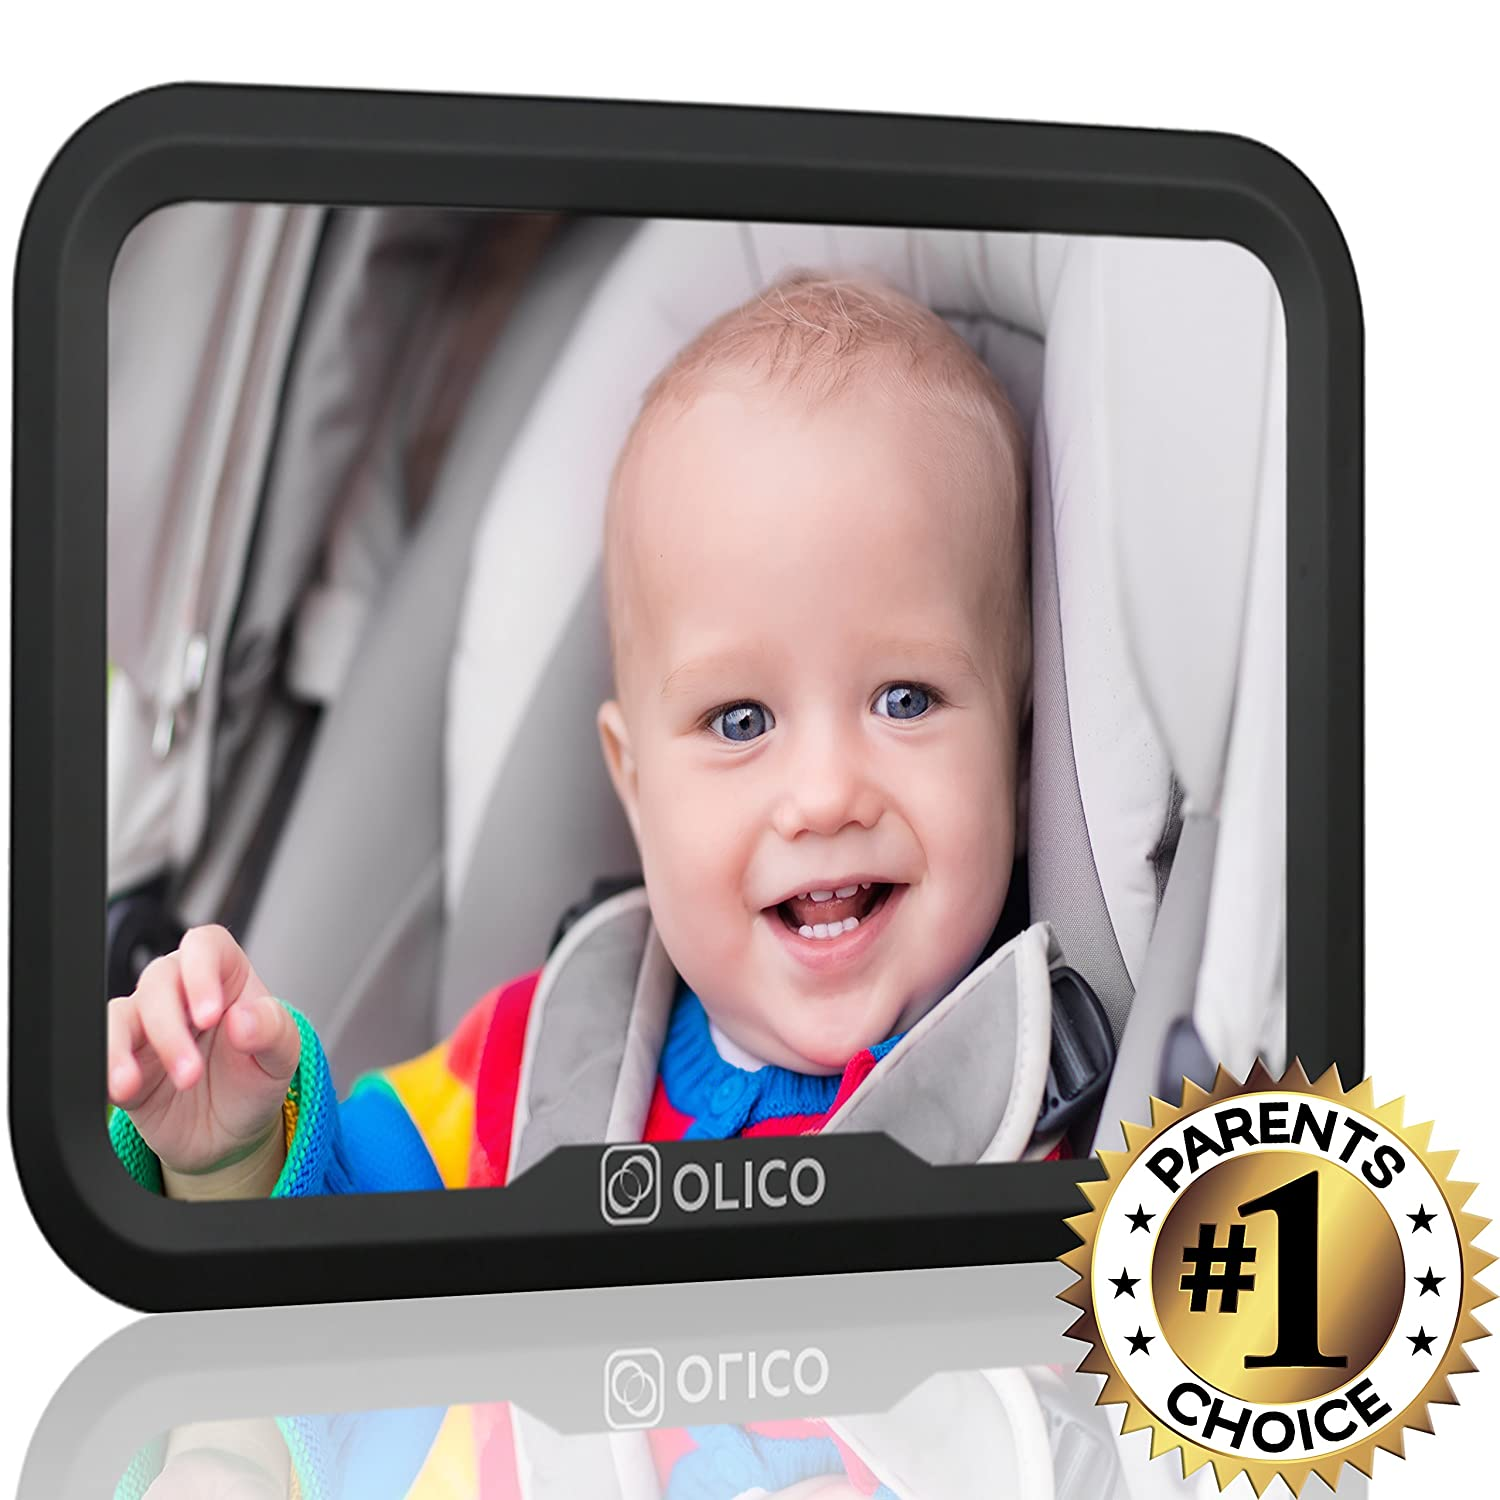 Baby Mirror by Olico Products, Baby View Mirror For Car Back Seat, Fully Adjustable, Easy Install, Used on Any Headrest, Extra Wide Angle Convex Mirror, 11.6in x 7.7in INF-1132